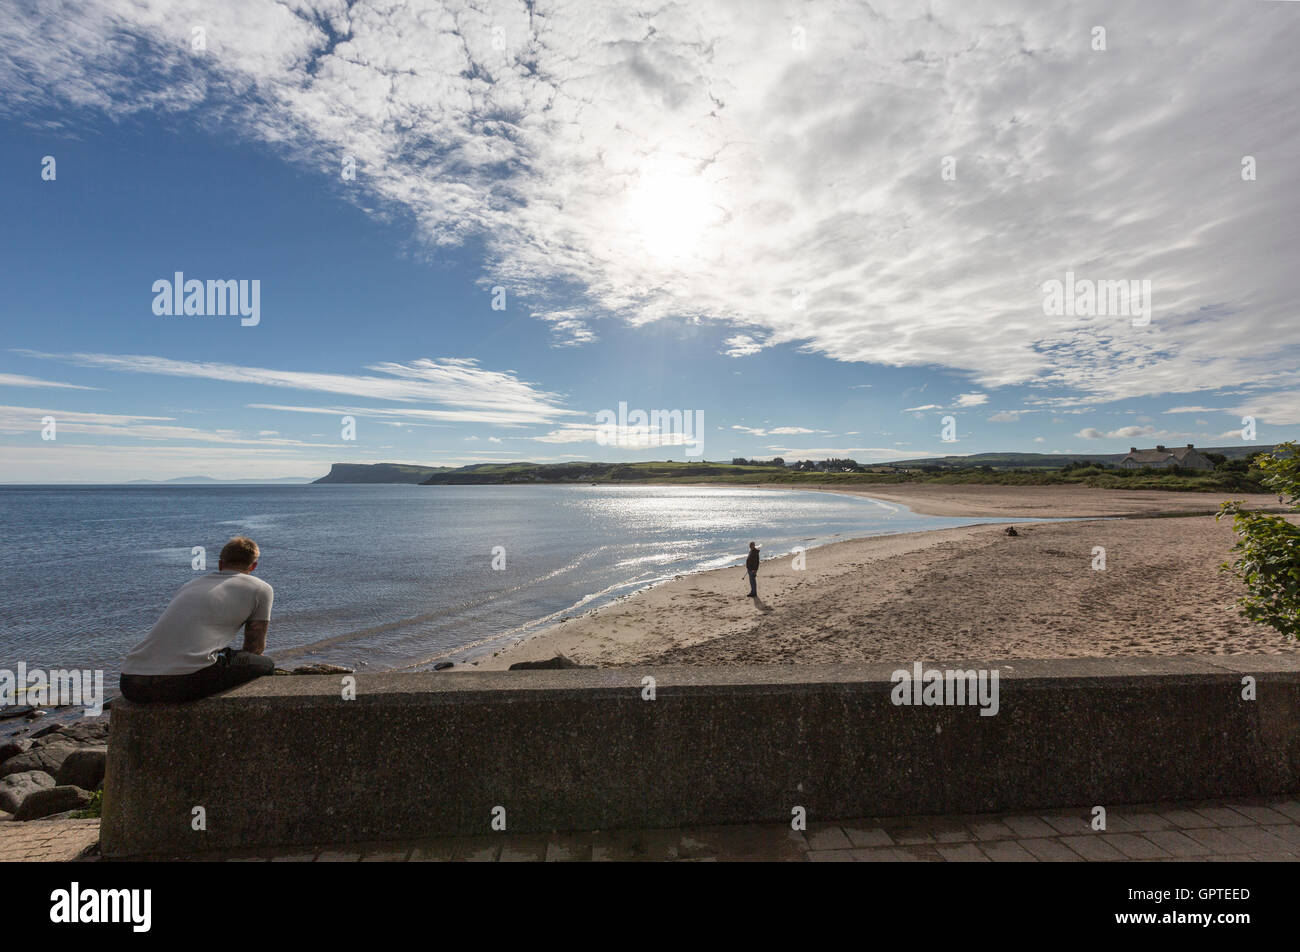 Man observing the sandy beach of Ballycastle, County Antrim, Northern Ireland, United Kingdom - Stock Image